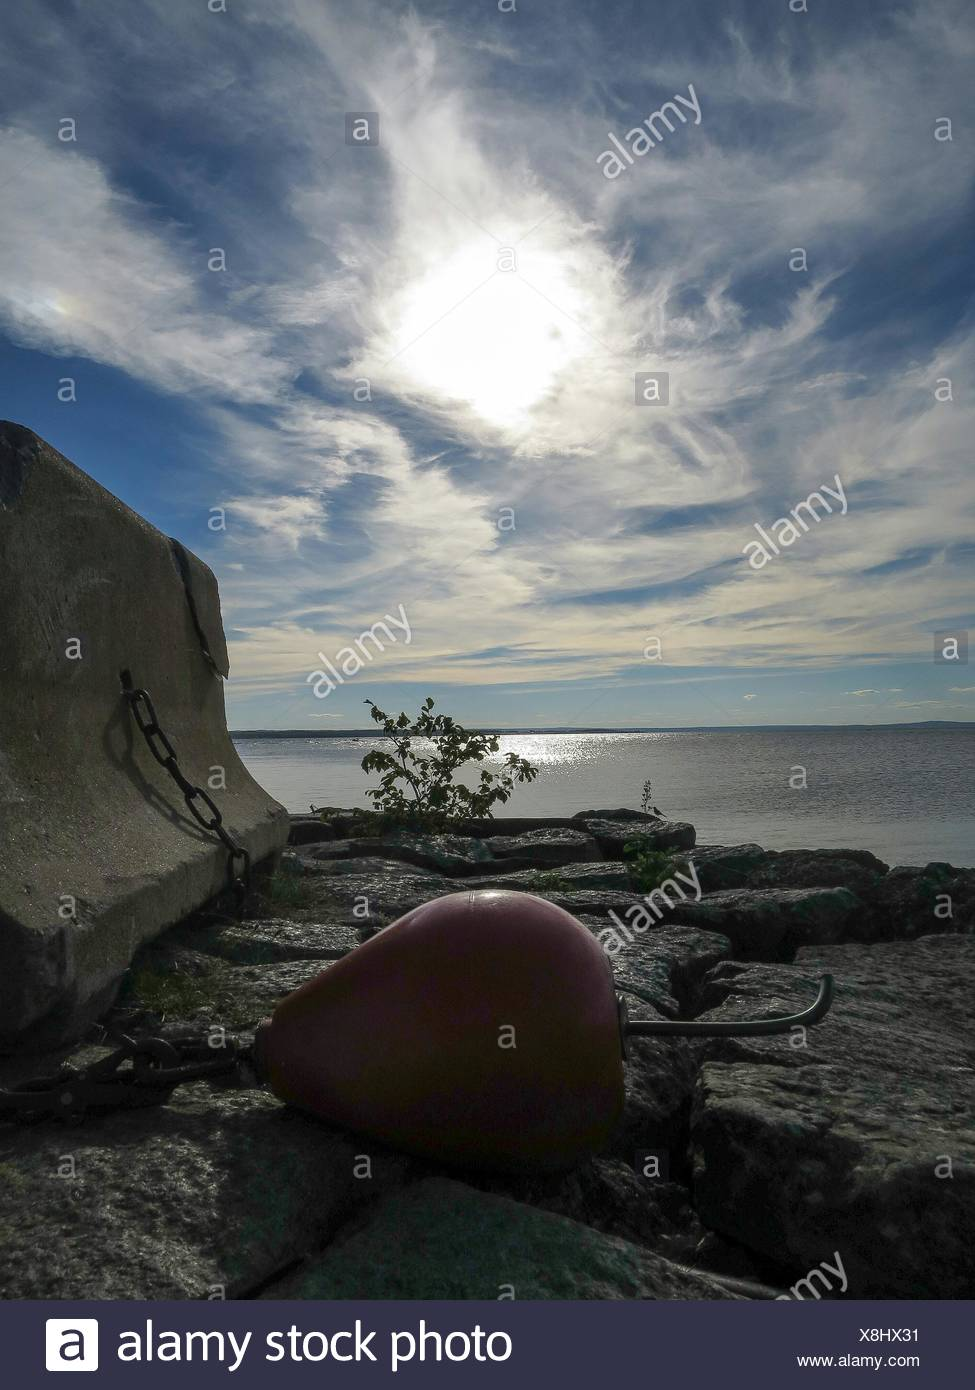 Buoy At Harbor Against Sky - Stock Image